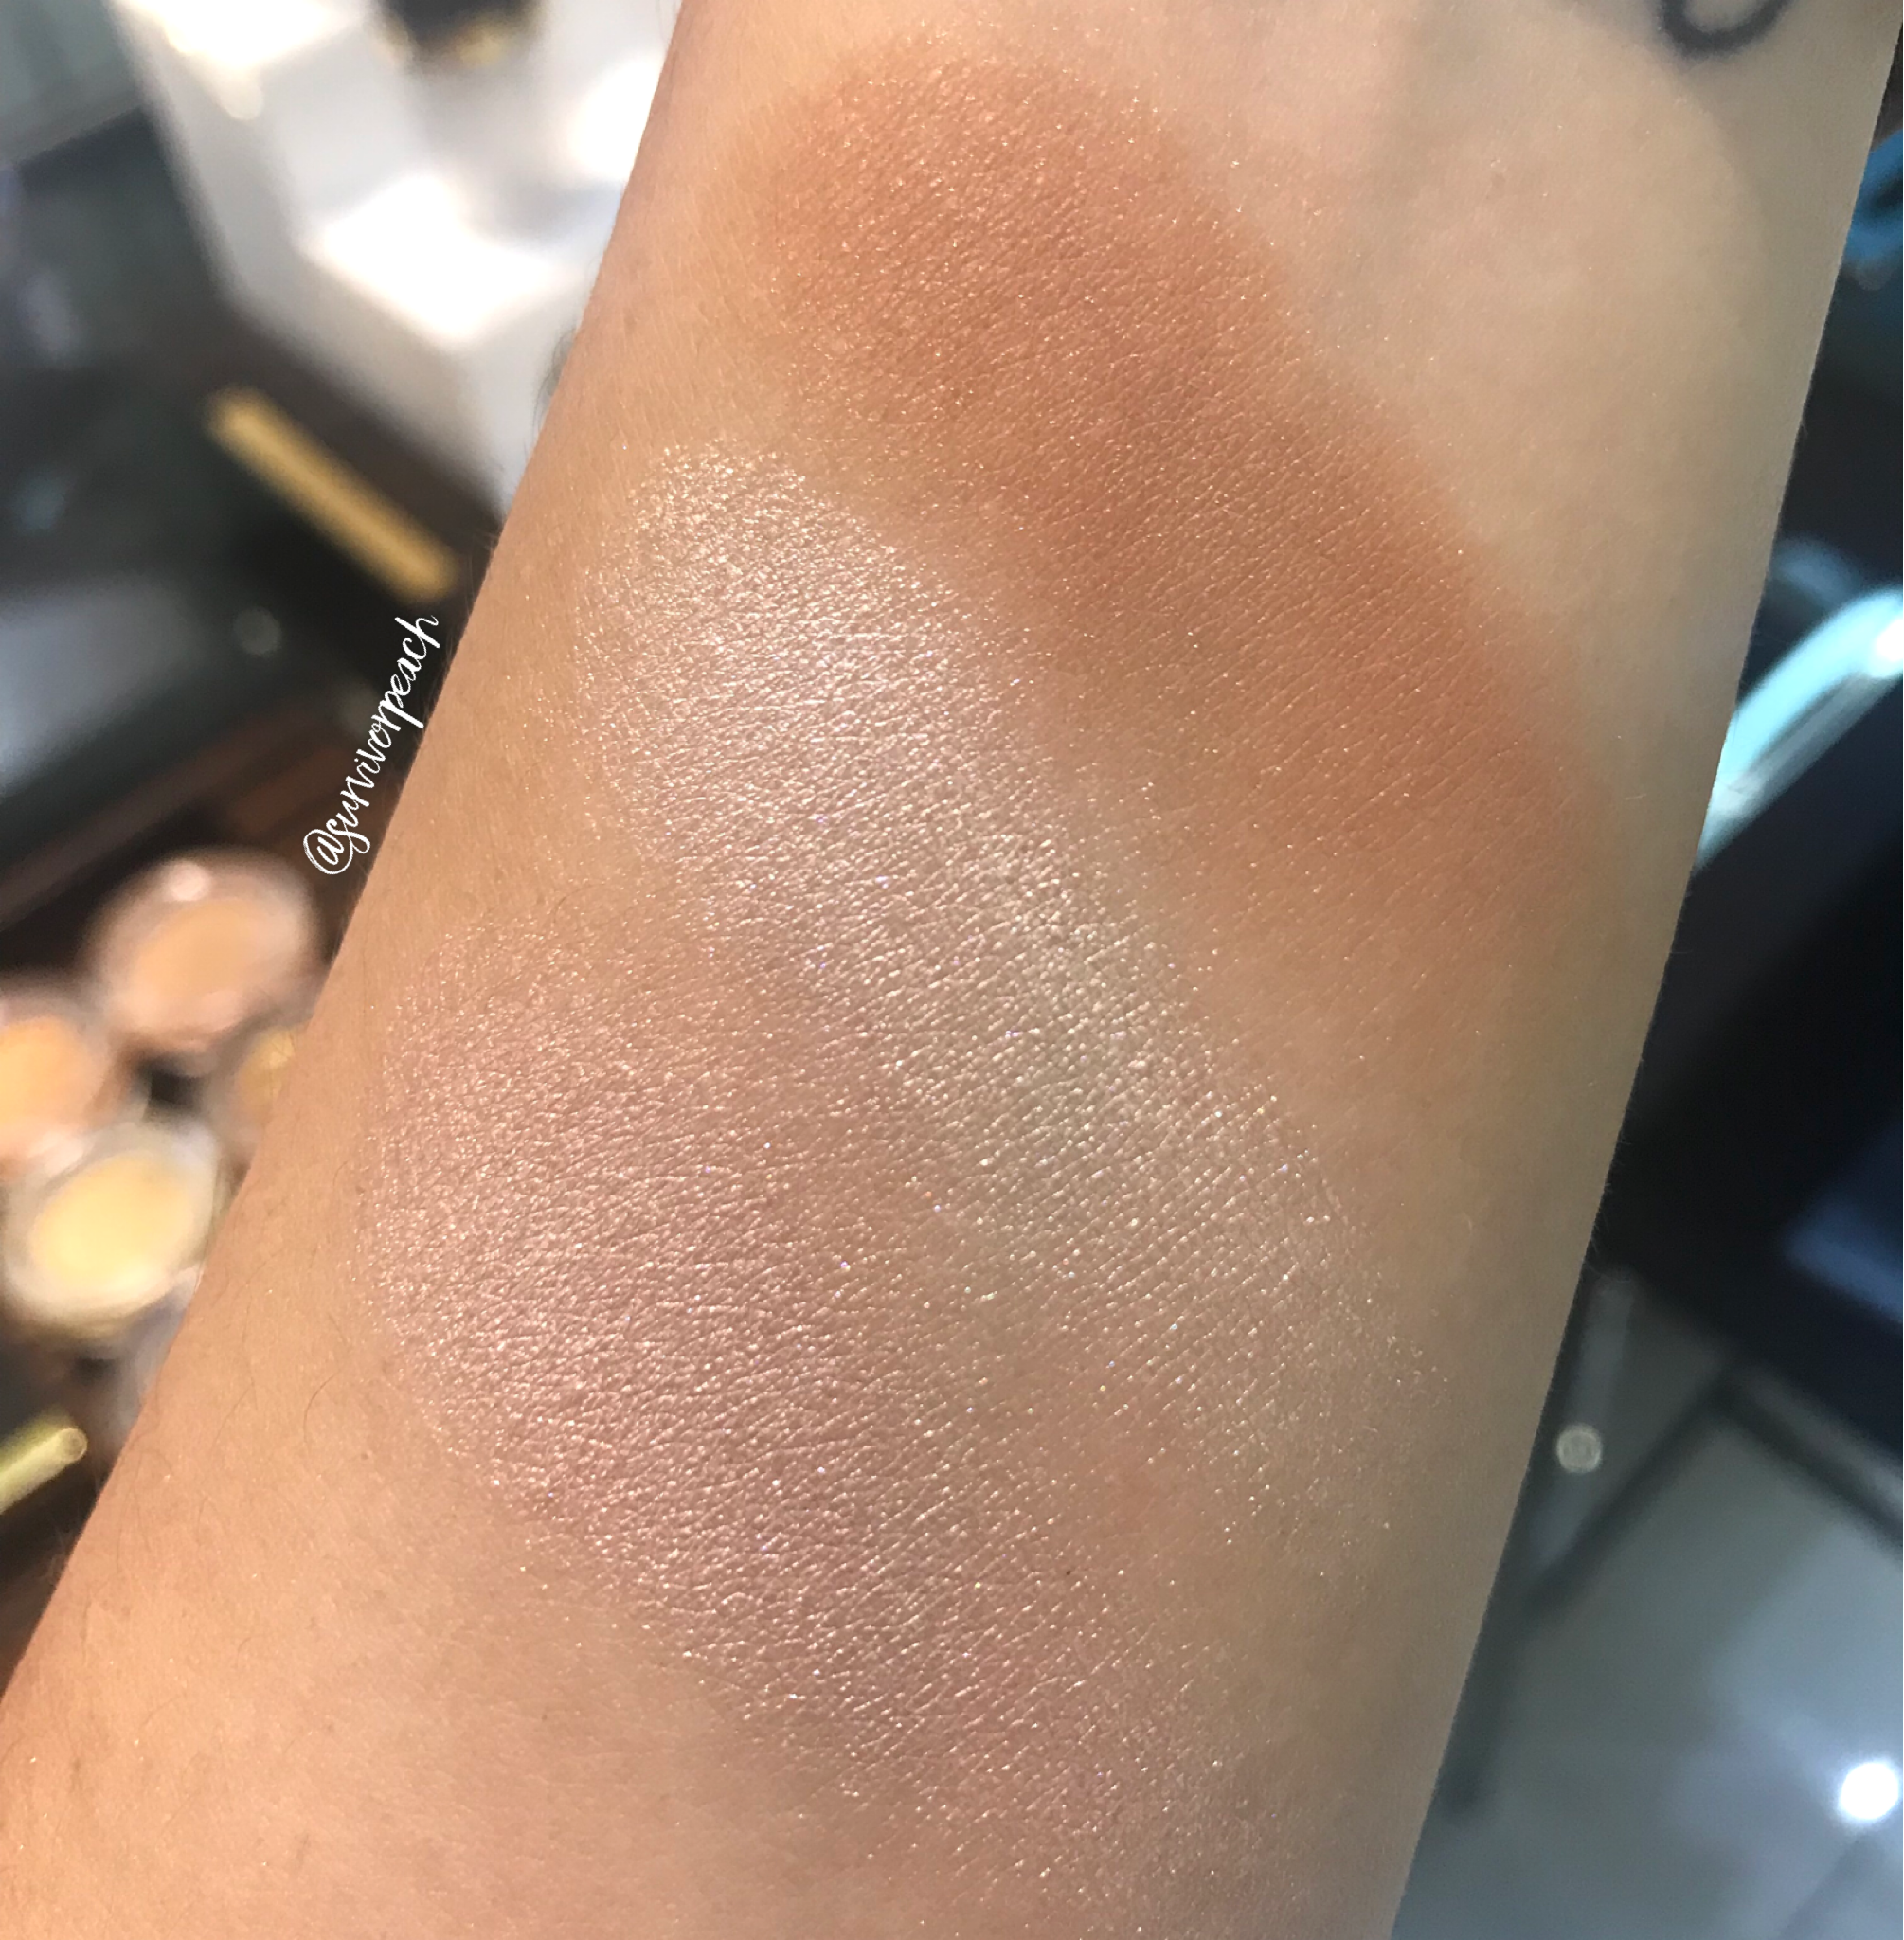 Tom Ford Bask Contouring compact swatches